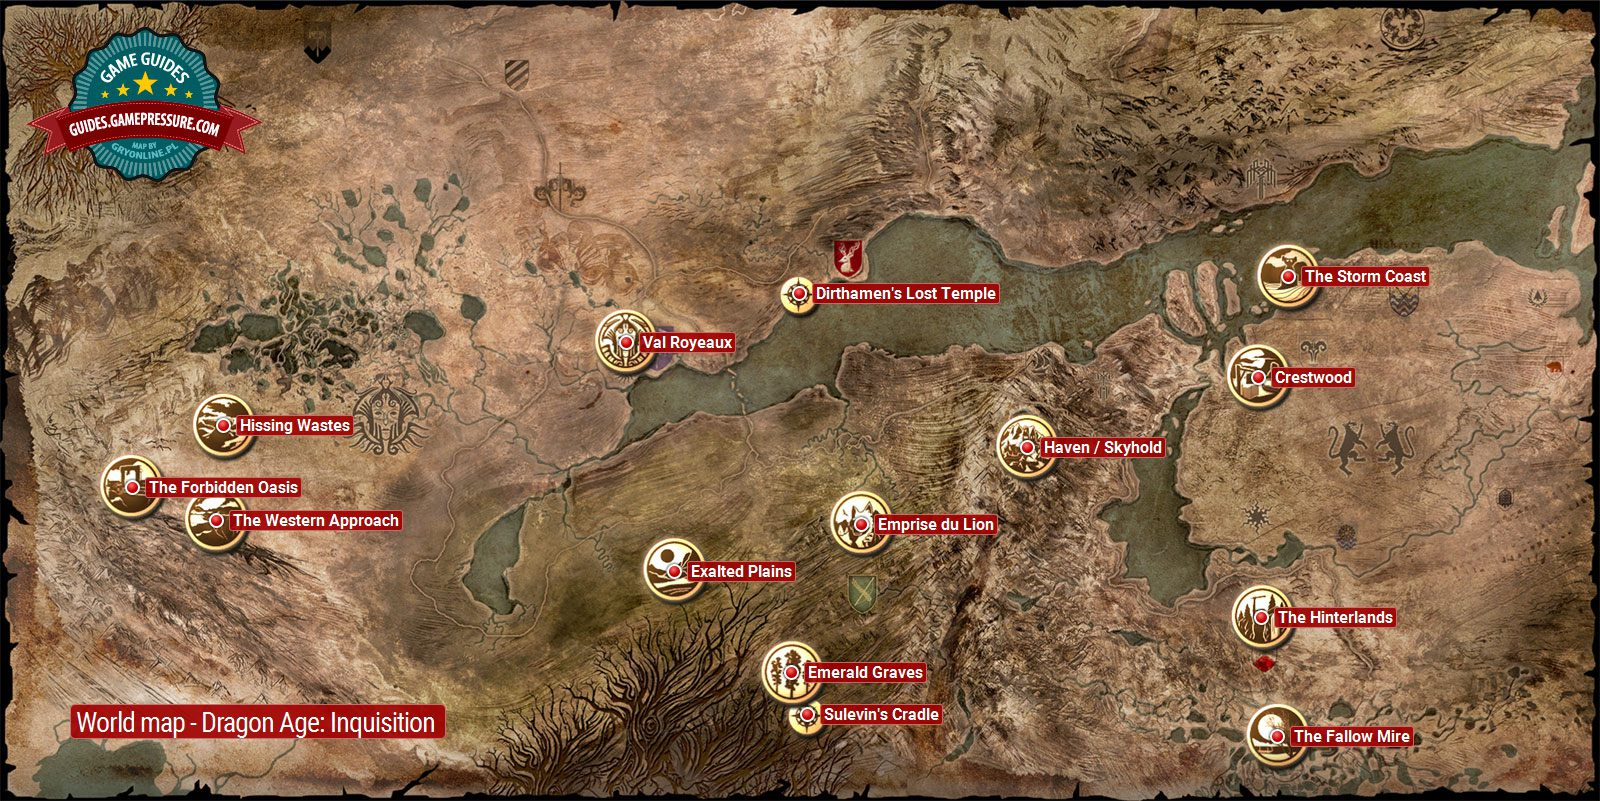 World map | Dragon Age: Inquisition World Atlas - Dragon Age ... on